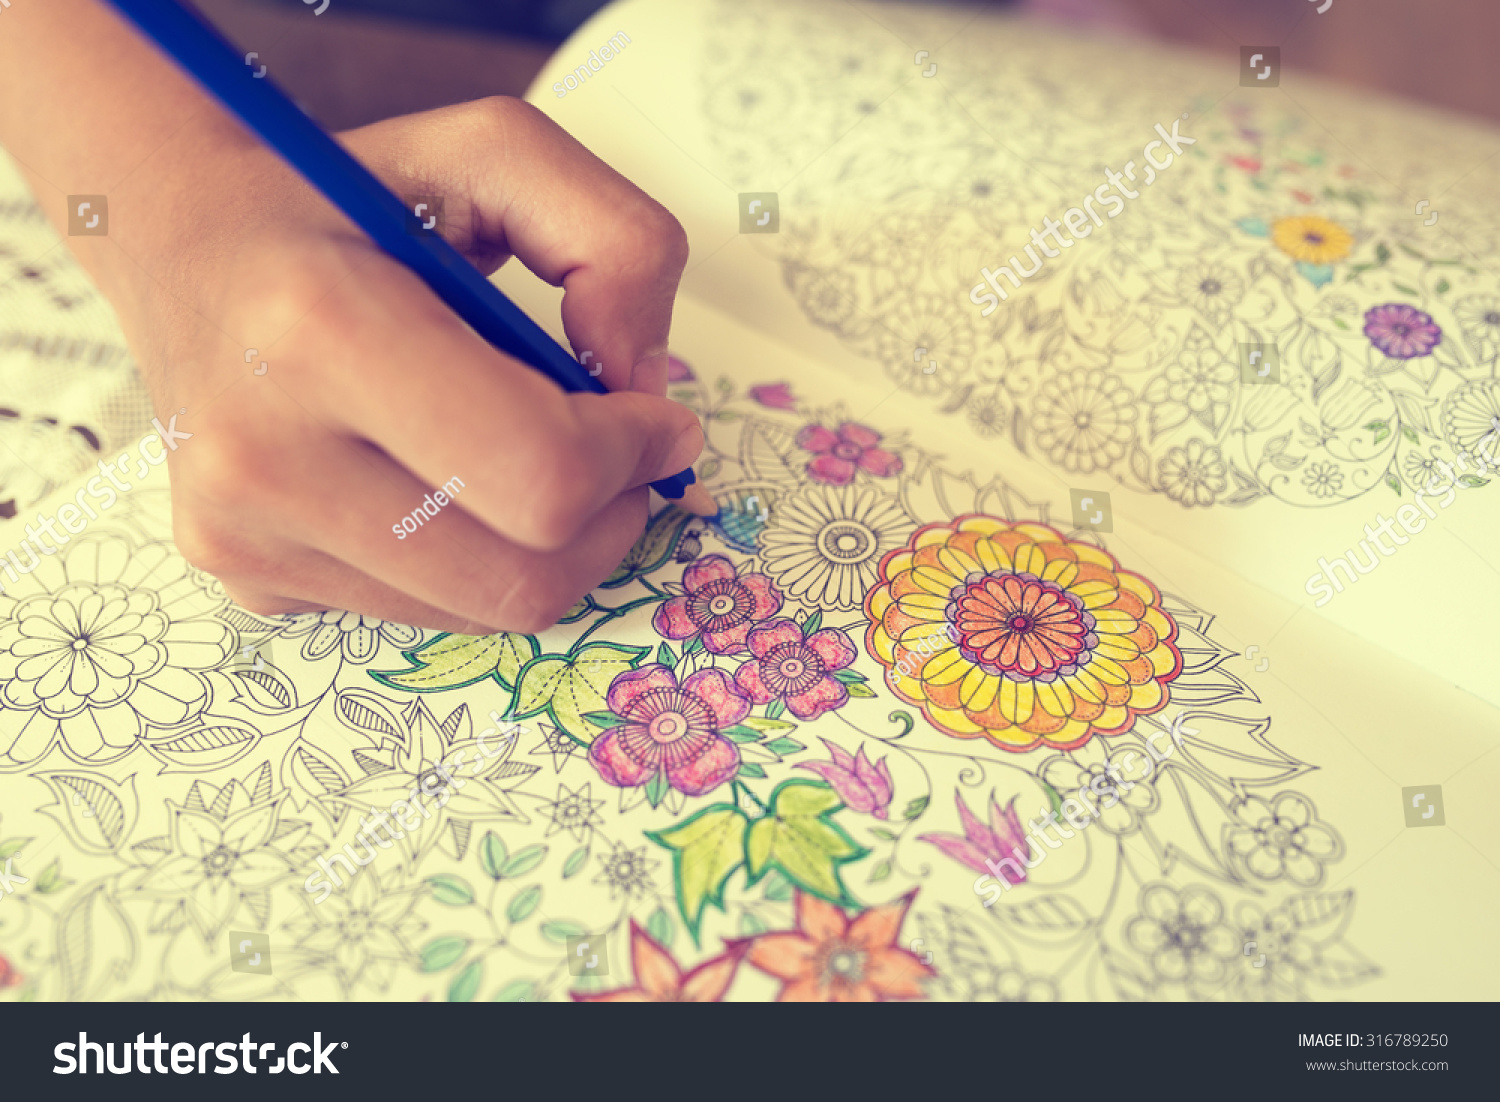 Paint Coloring Book Stock Photo 316789250 - Shutterstock